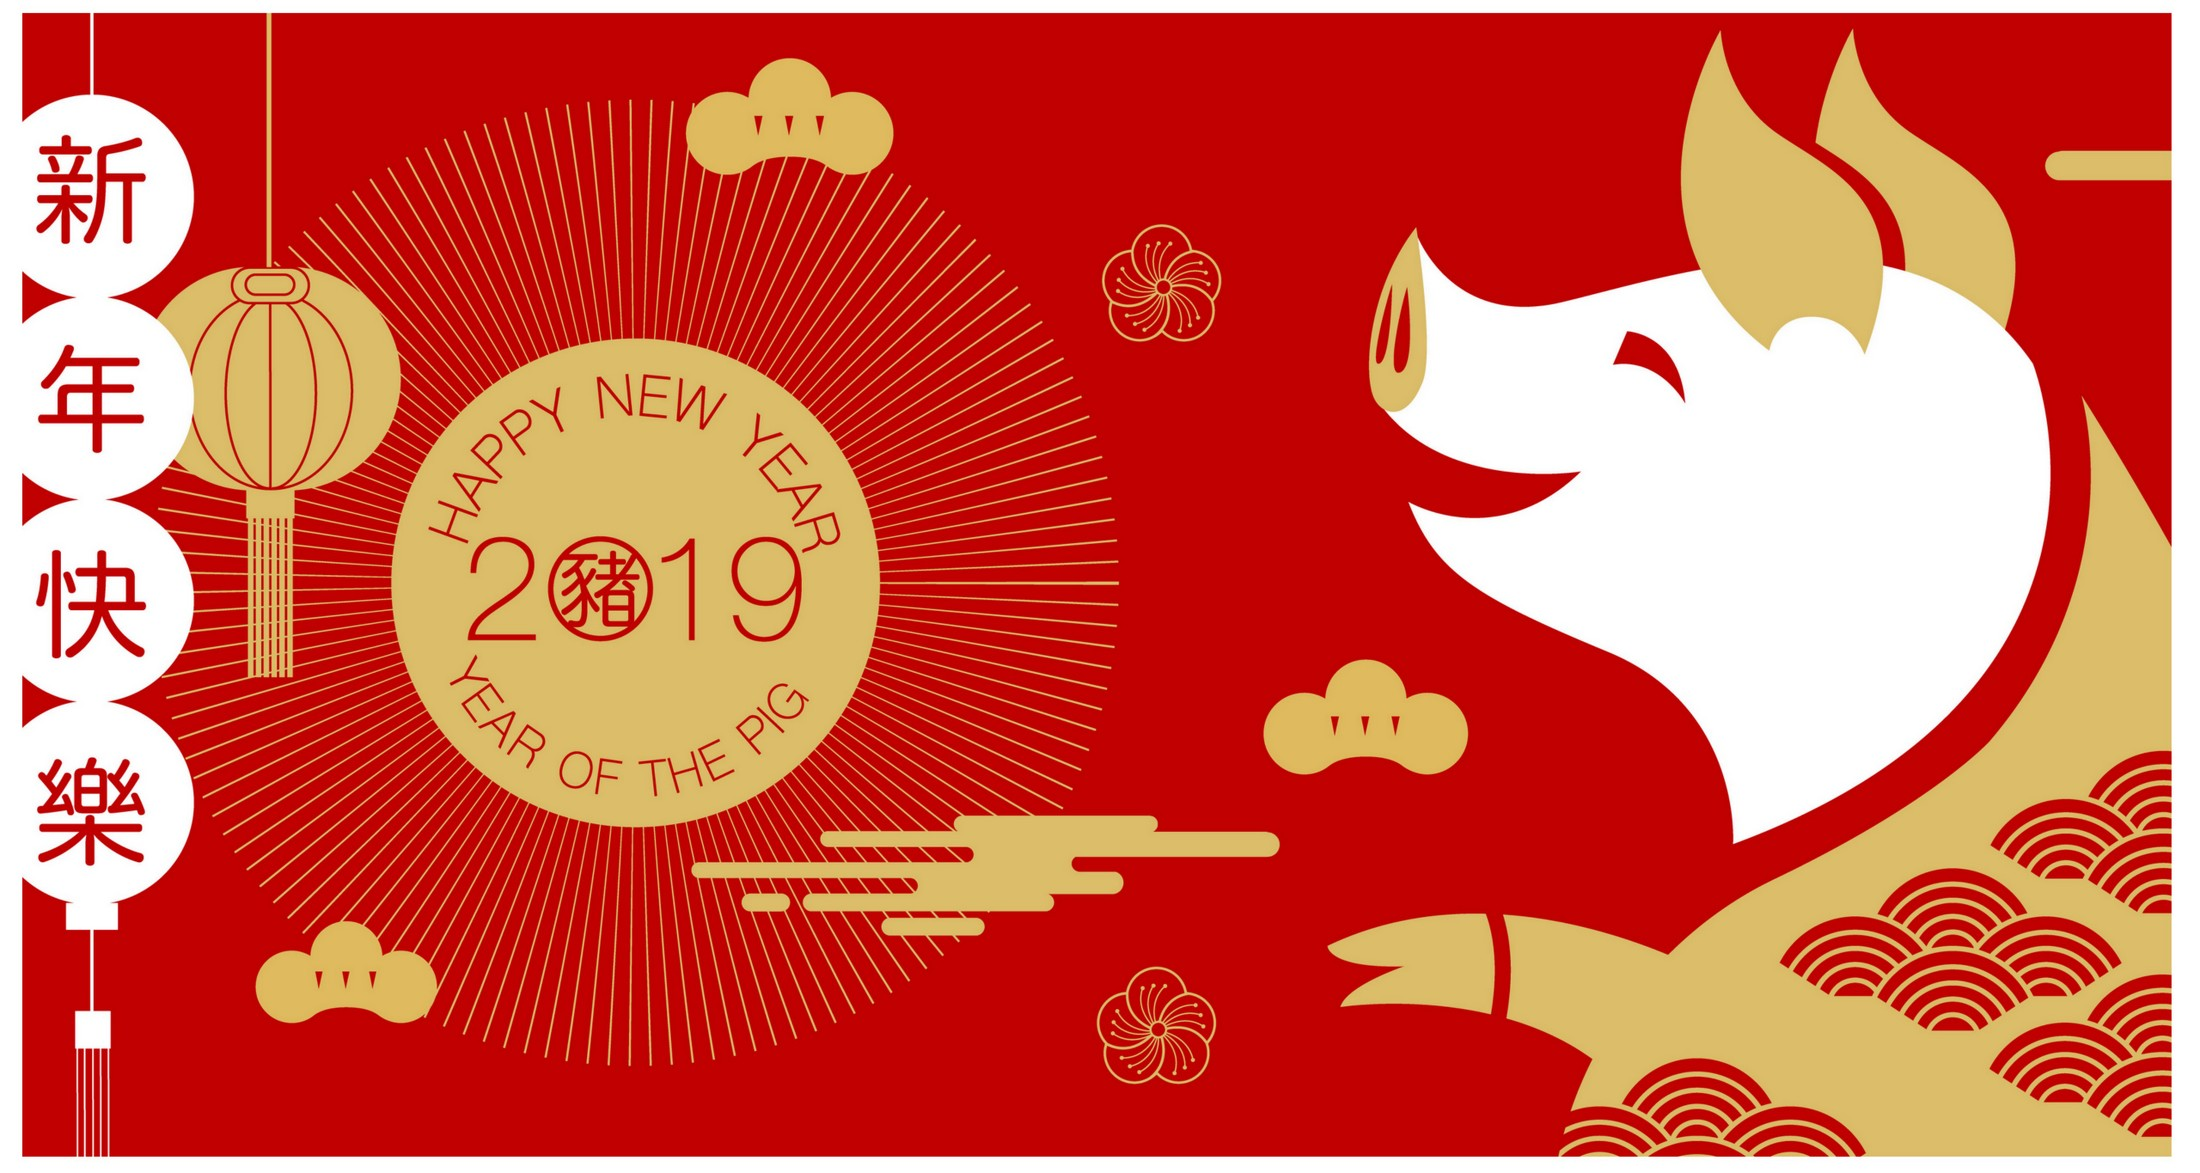 Beauty products to get in 2019: Chinese New Year and the Year of the Pig